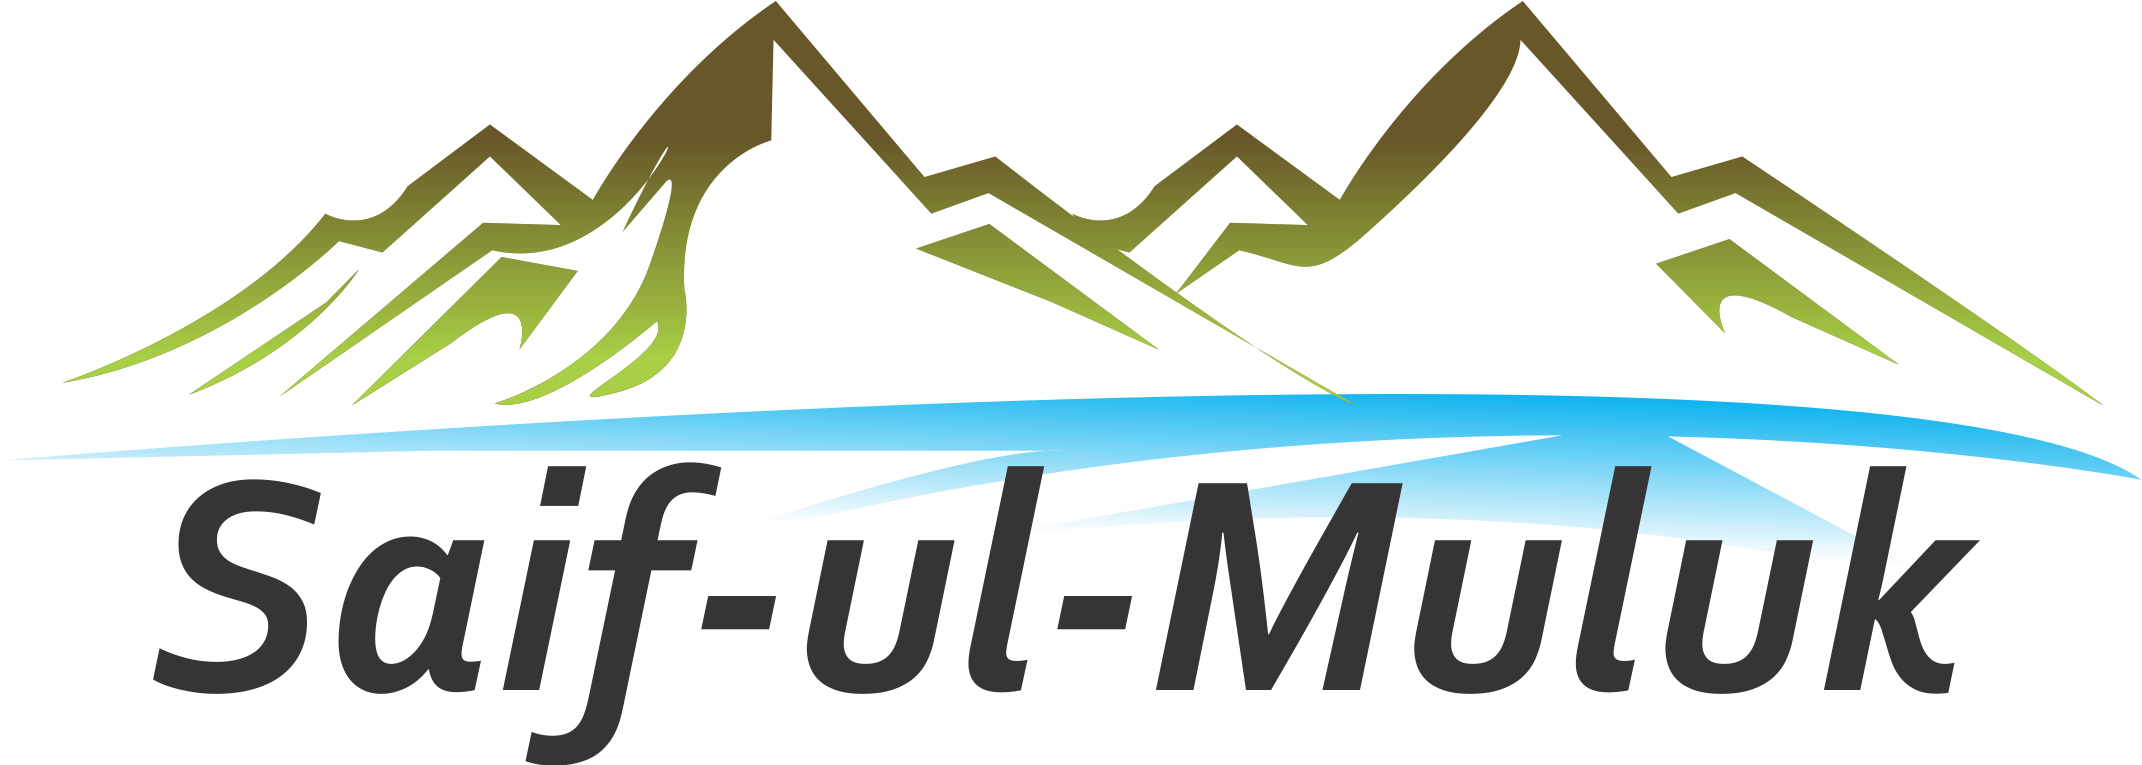 SaifulMuluk Tour and Travel Company | Saif-Ul-Muluk | Arcadian Hotel Shogran - SaifulMuluk Tour and Travel Company | Saif-Ul-Muluk